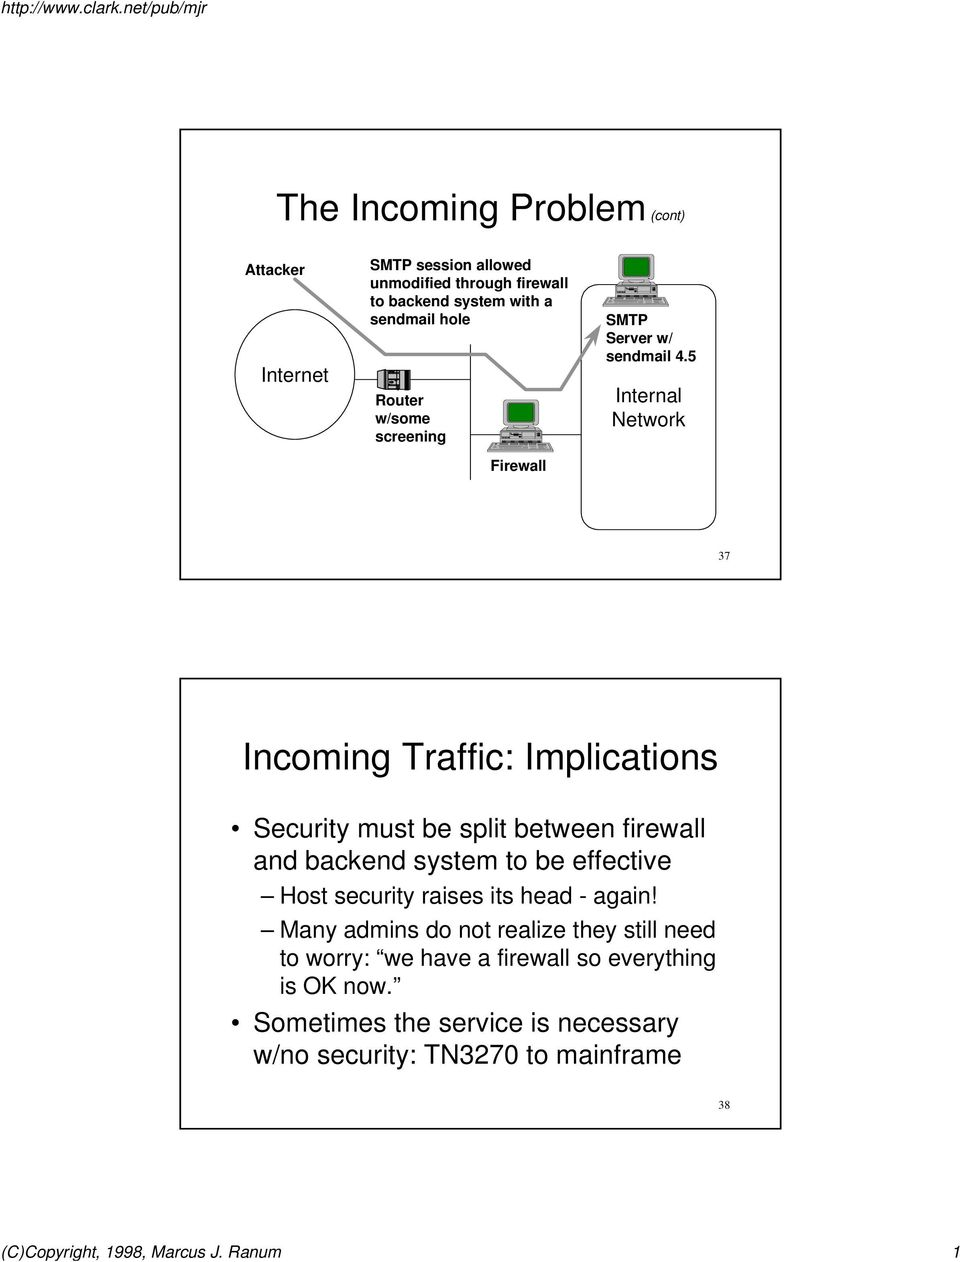 5 Internal Network 37 Incoming Traffic: Implications Security must be split between firewall and backend system to be effective Host security